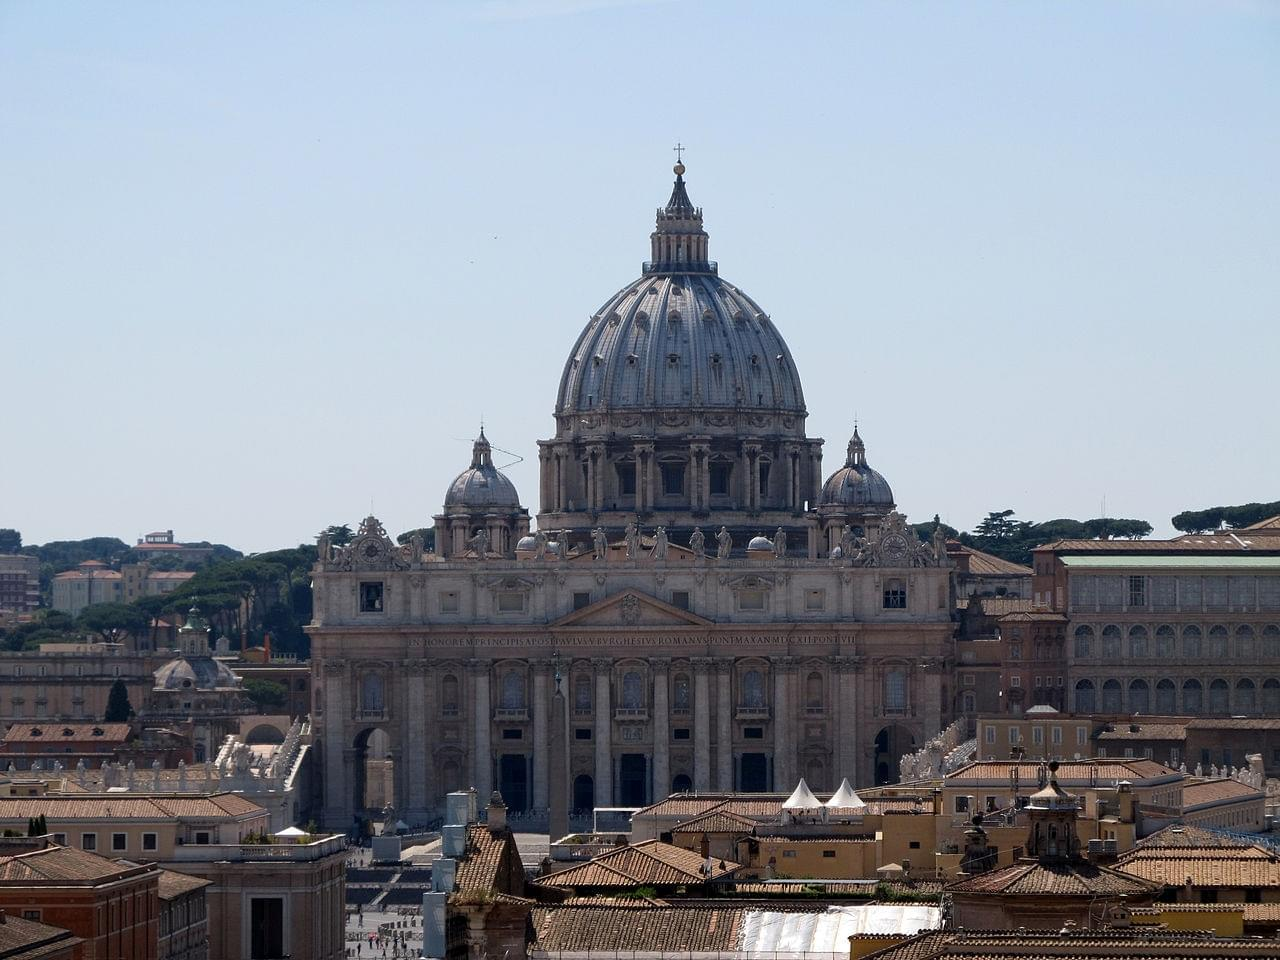 The description of the St Peter's Basilica